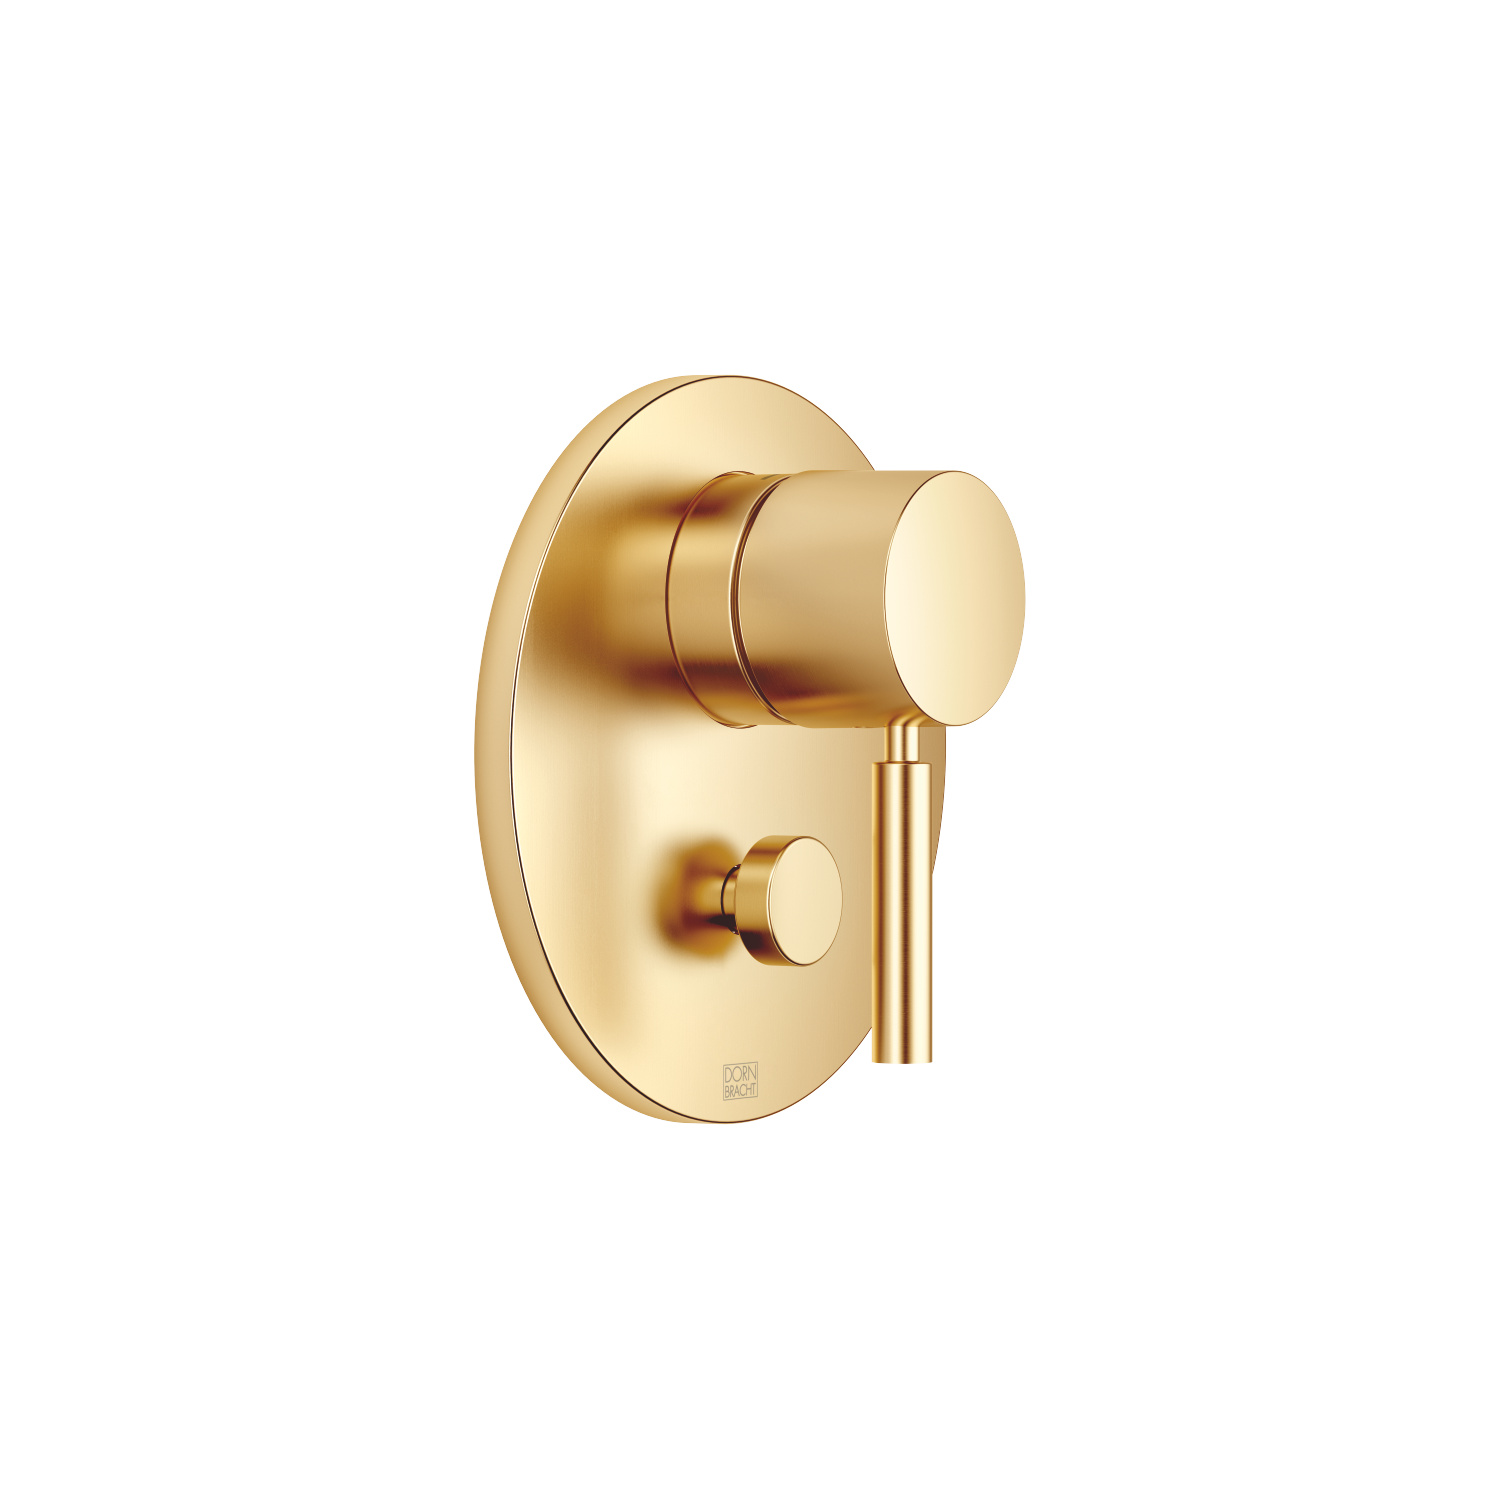 FM one-handed regulator with diverter - Brushed Durabrass